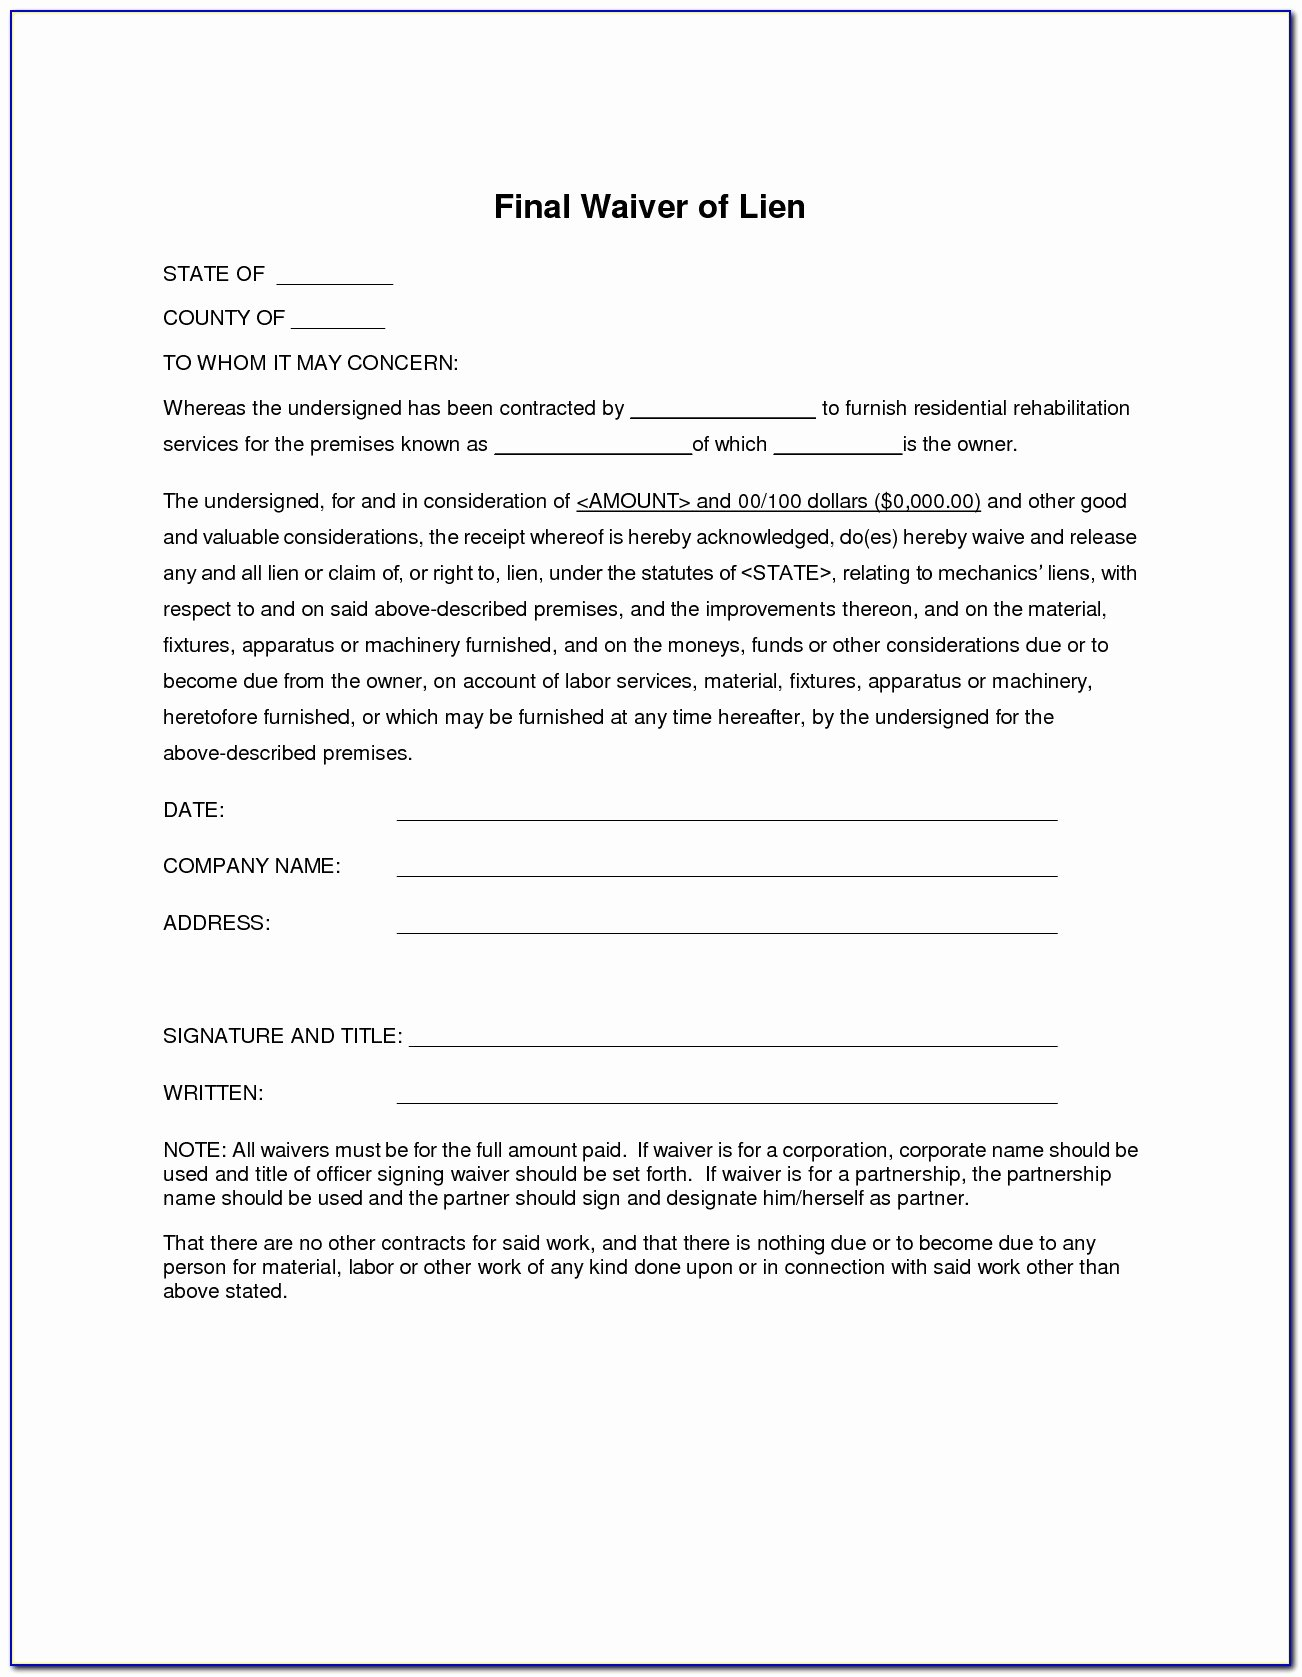 Lien Waiver form Template Beautiful Final Waiver and Release Lien form